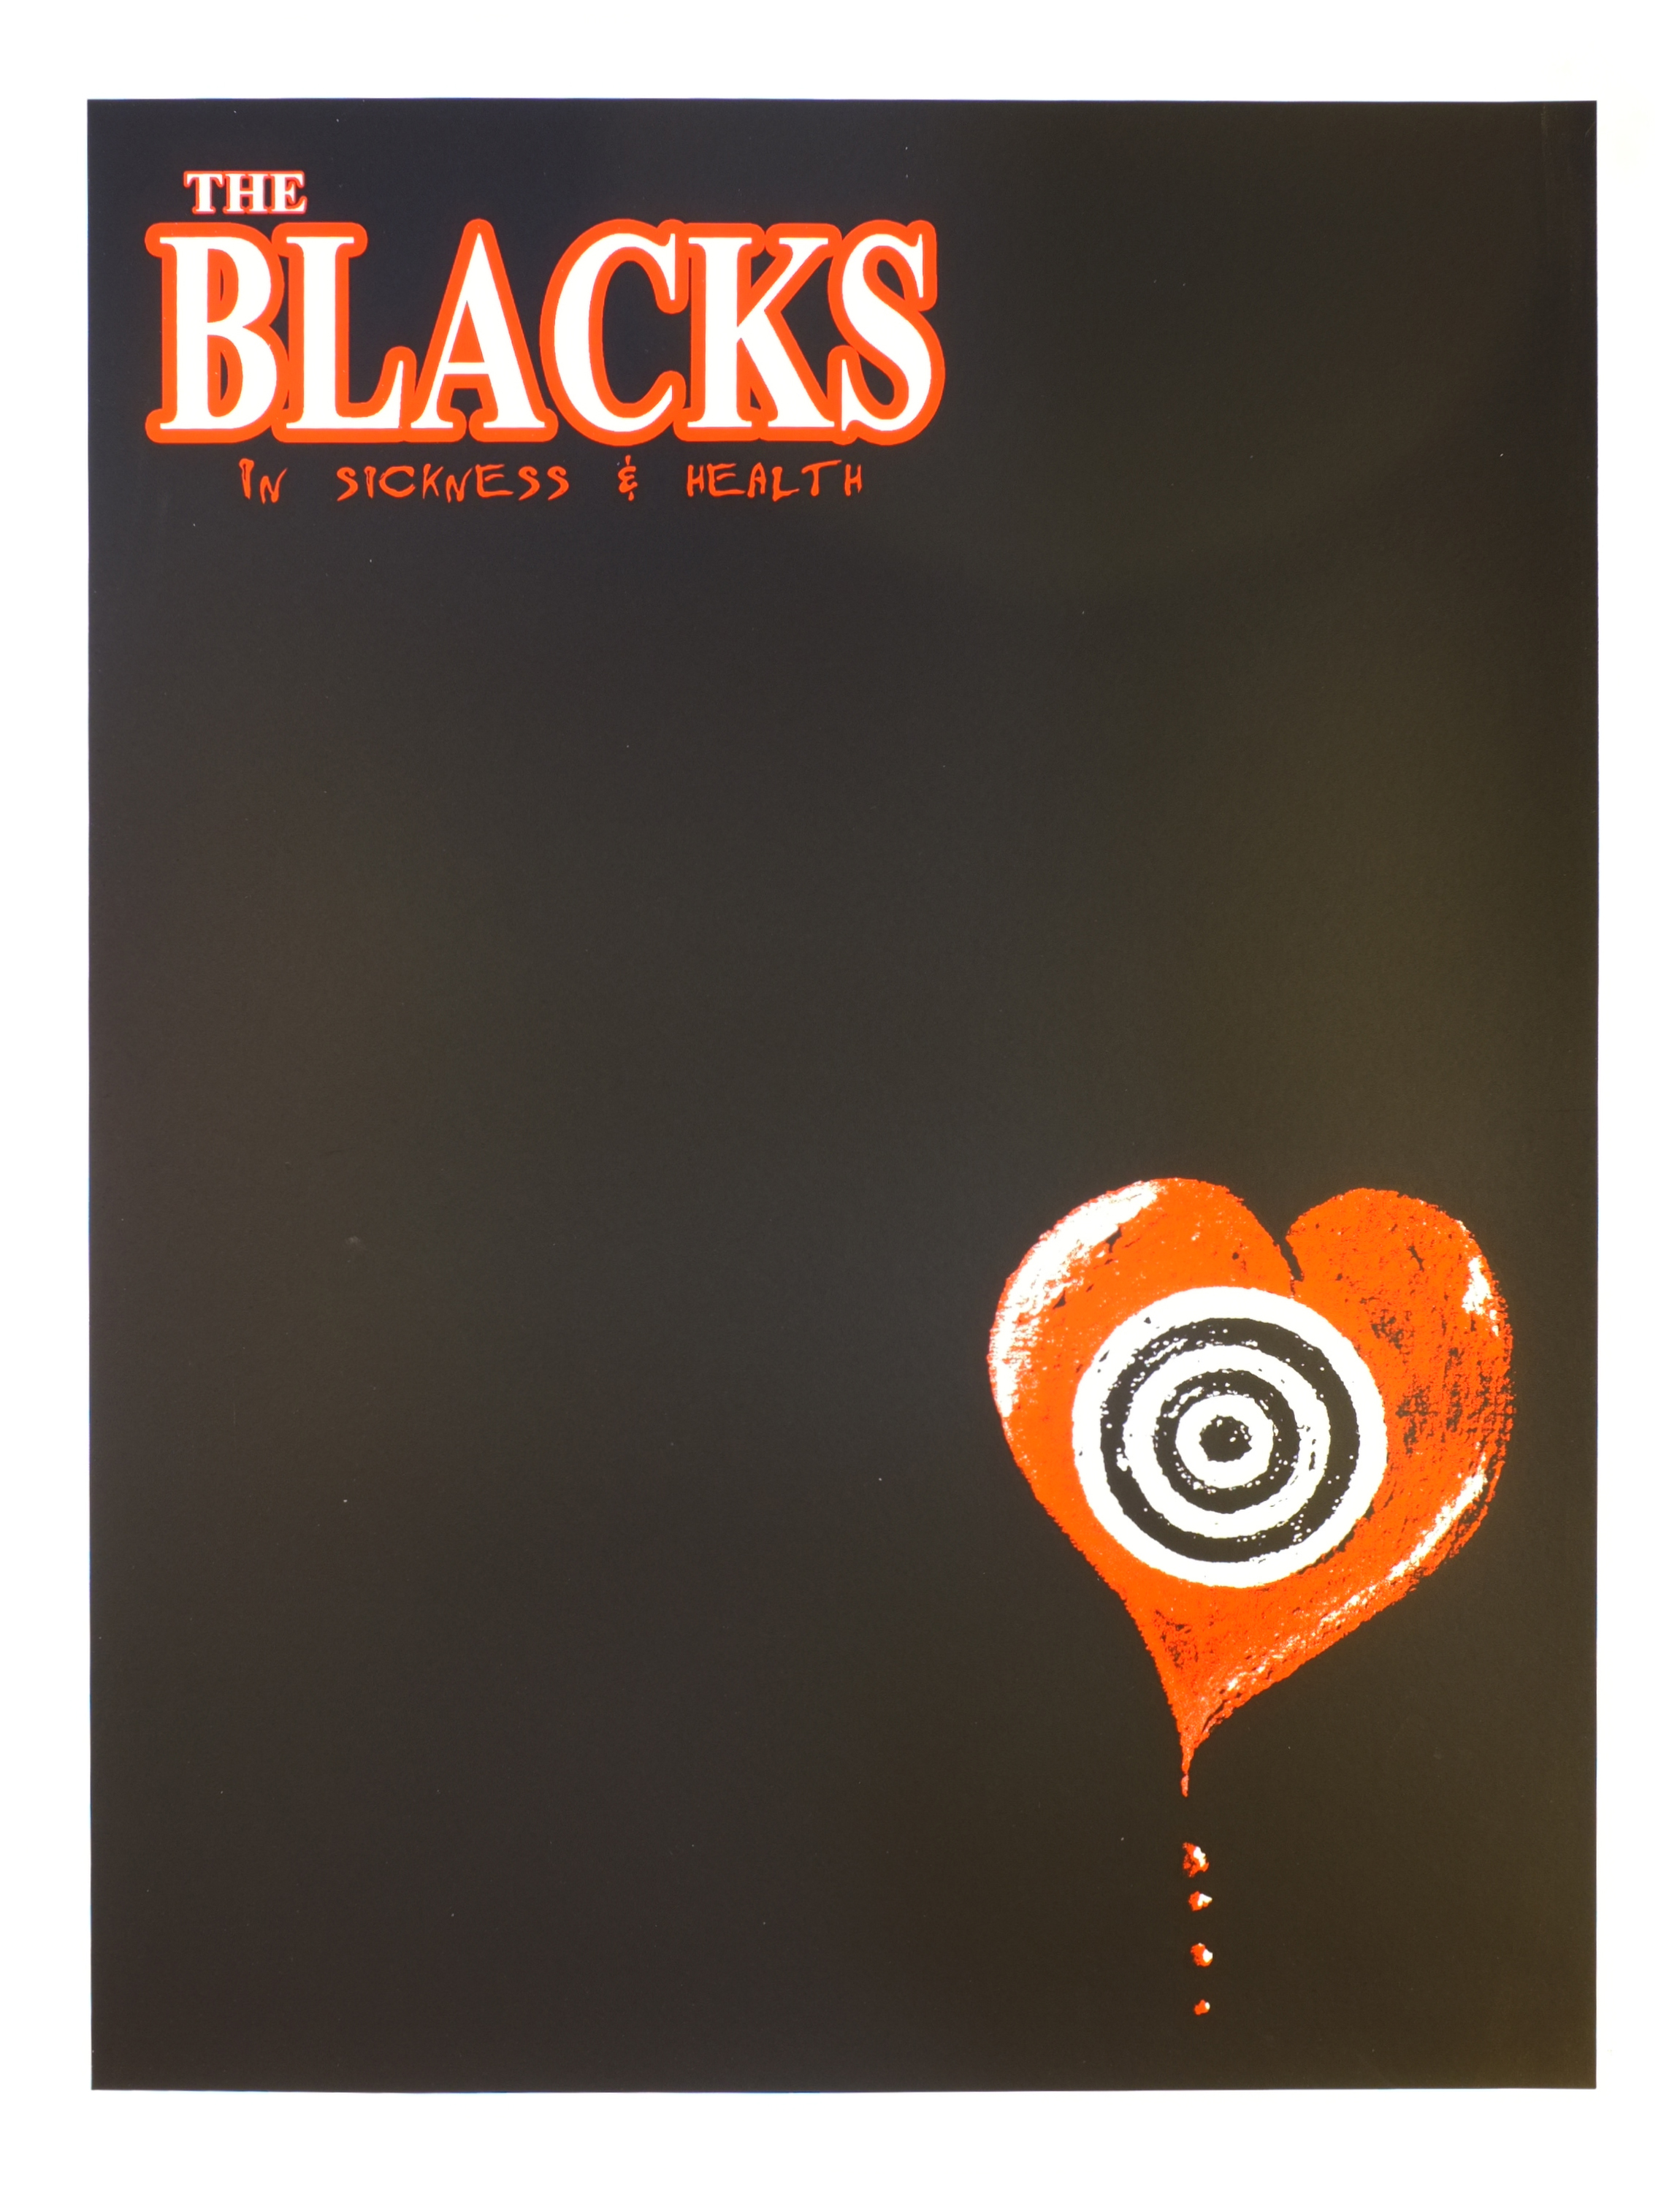 The Black In Sickness & Health Poster